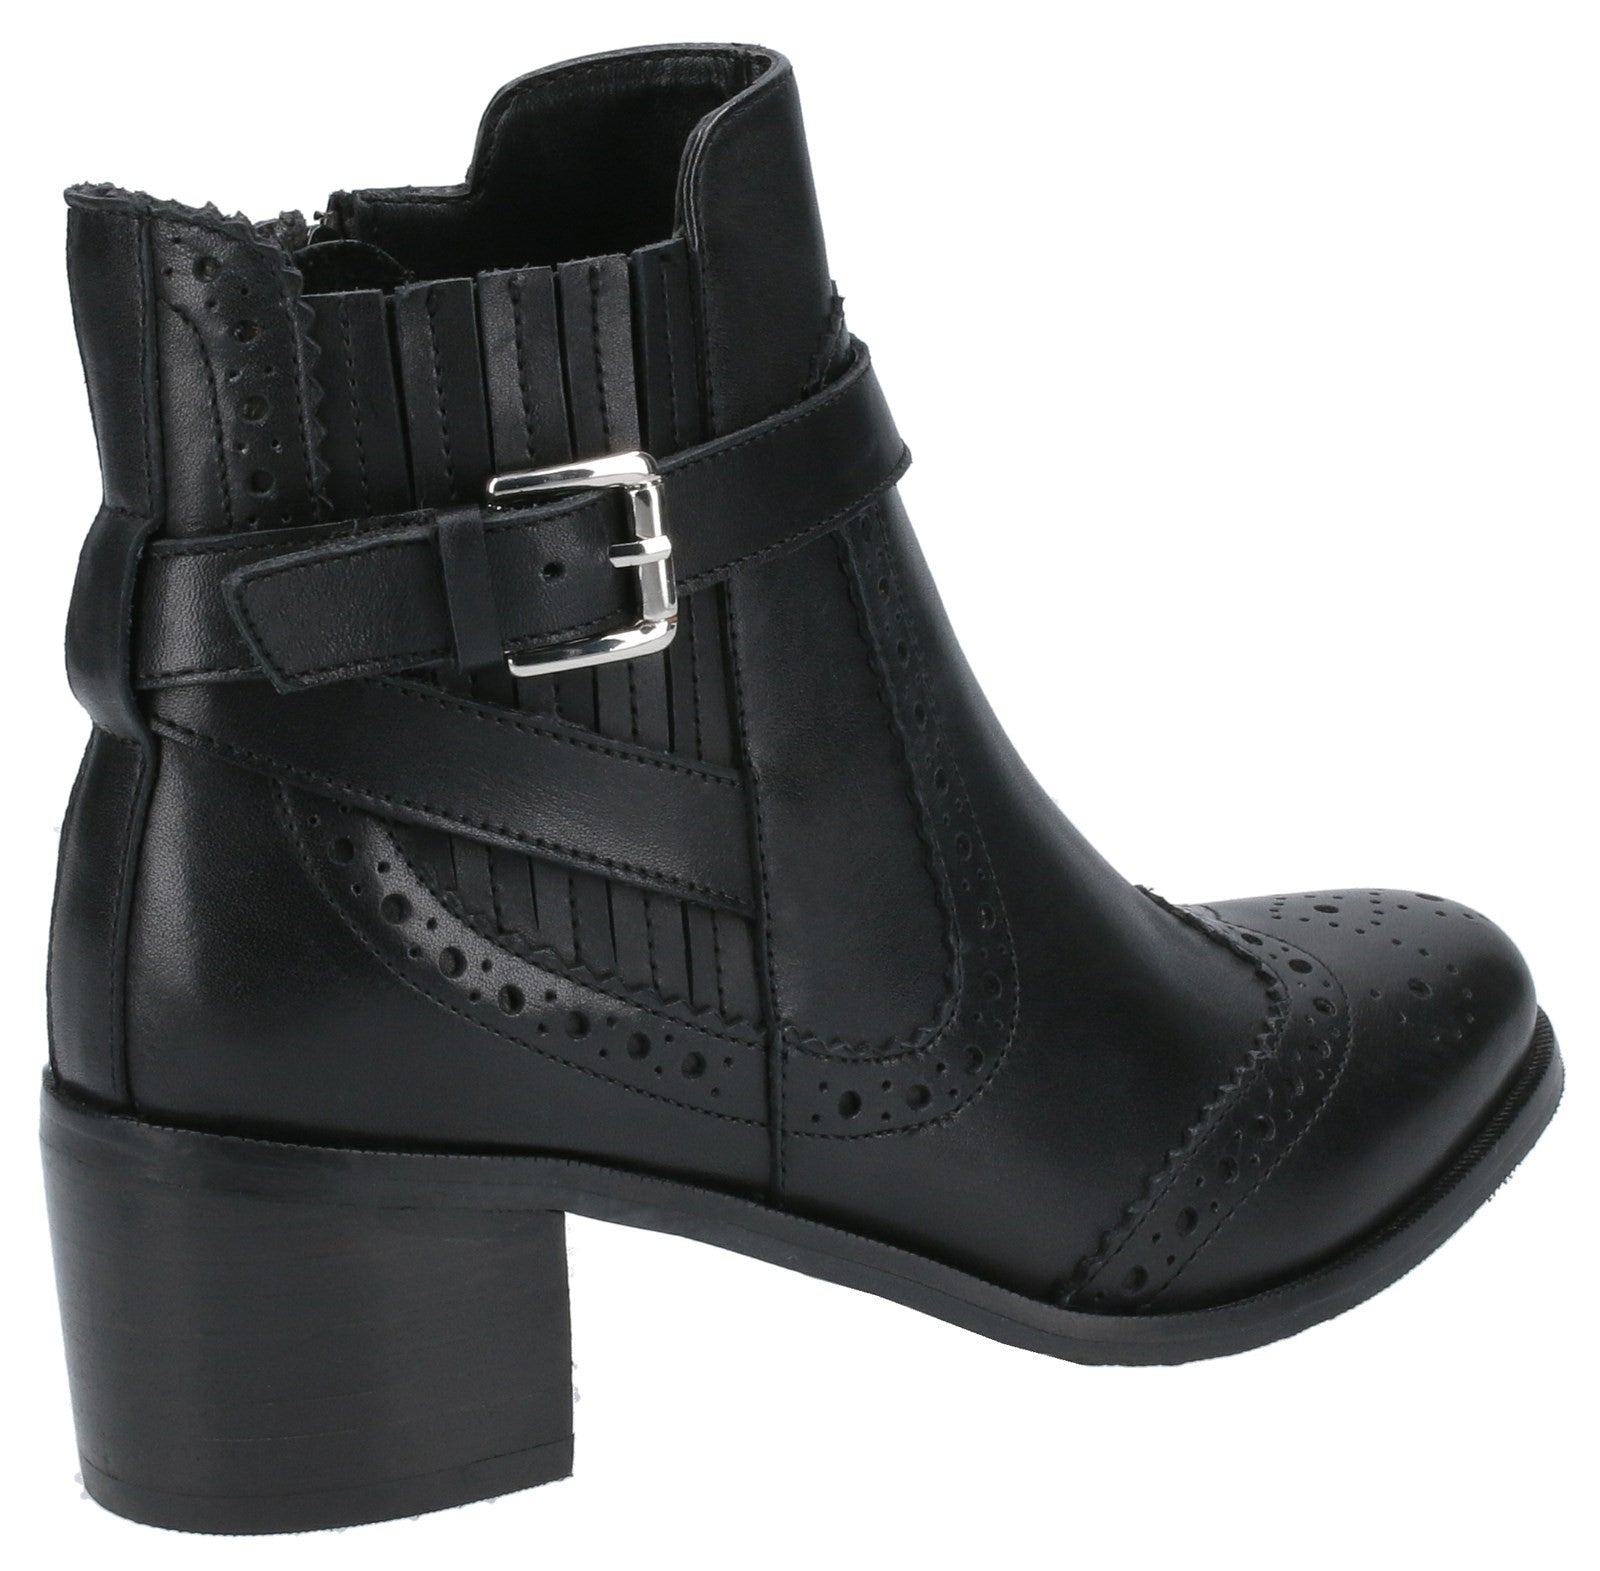 Hush Puppies Womens Rayleigh Leather Ankle Boots